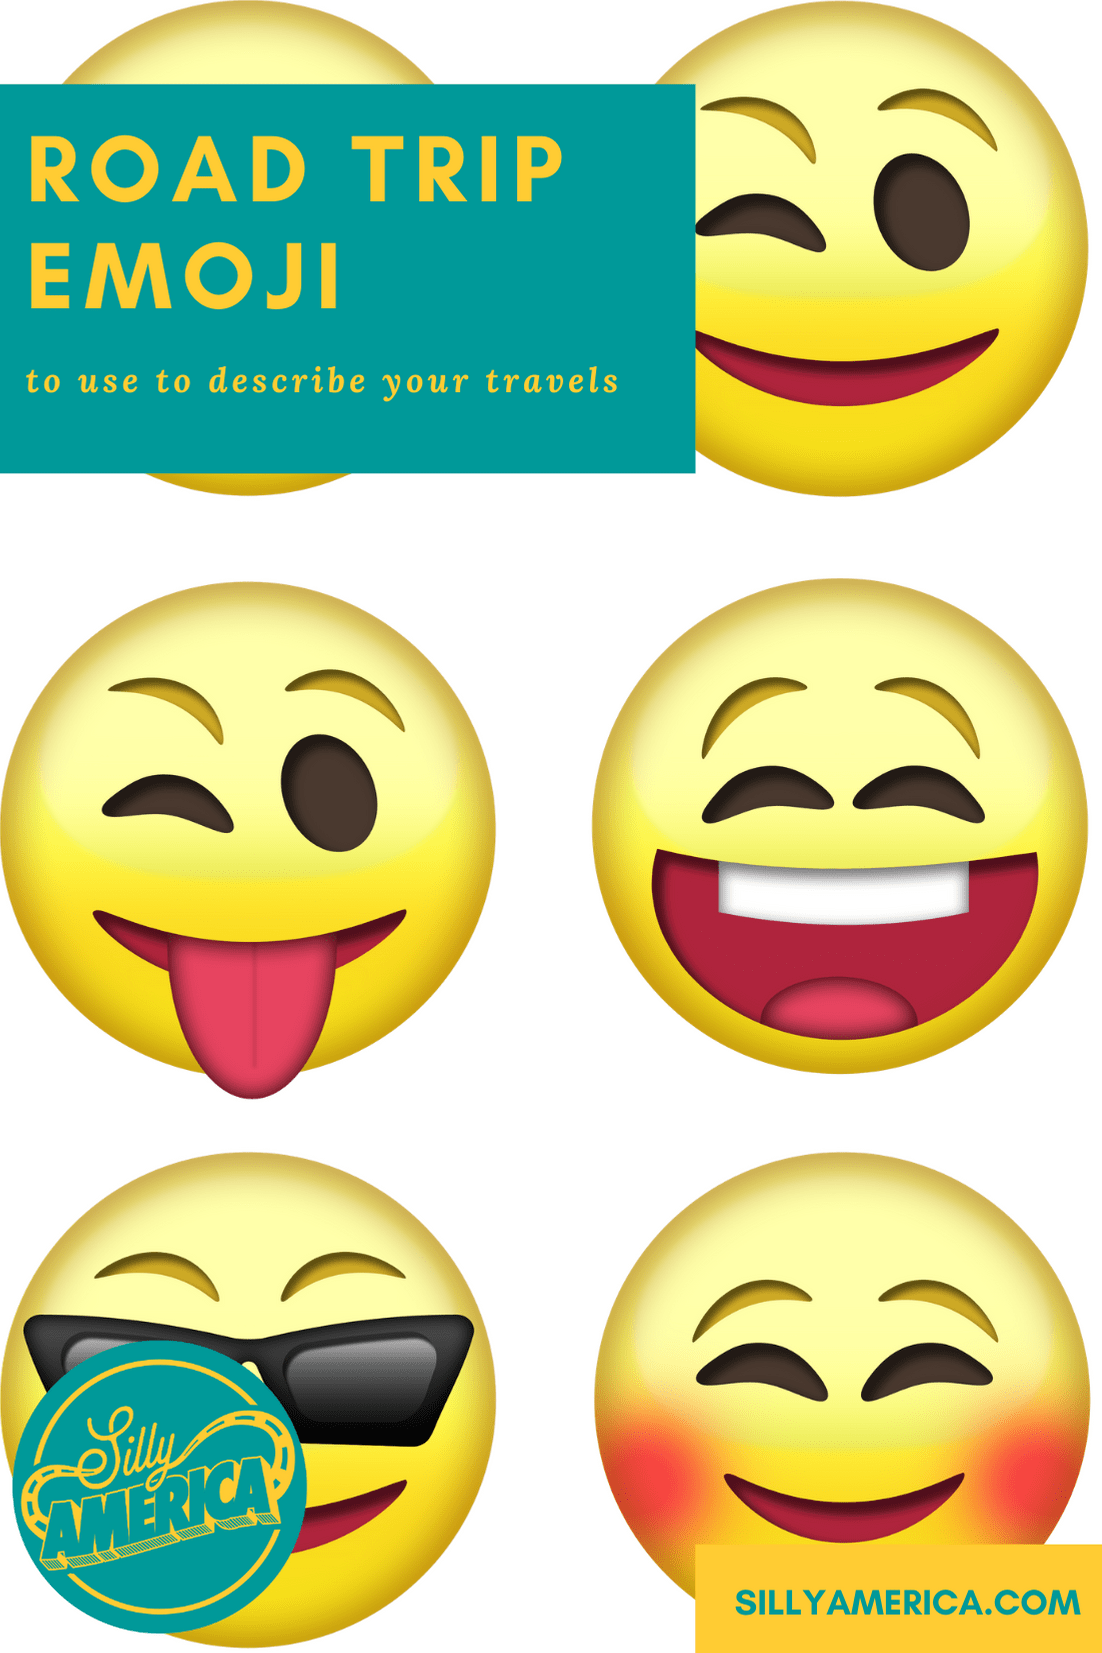 Are you looking for the best road trip emoji to represent your travels? Whether you're looking for the perfect symbol to text your friend or want to enhance your Instagram caption, here are some of the best emoji to use to describe your road trip! #RoadTrip #RoadTripPlanning #Emoji #Emojis #RoadTrips #RoadTripEmoji